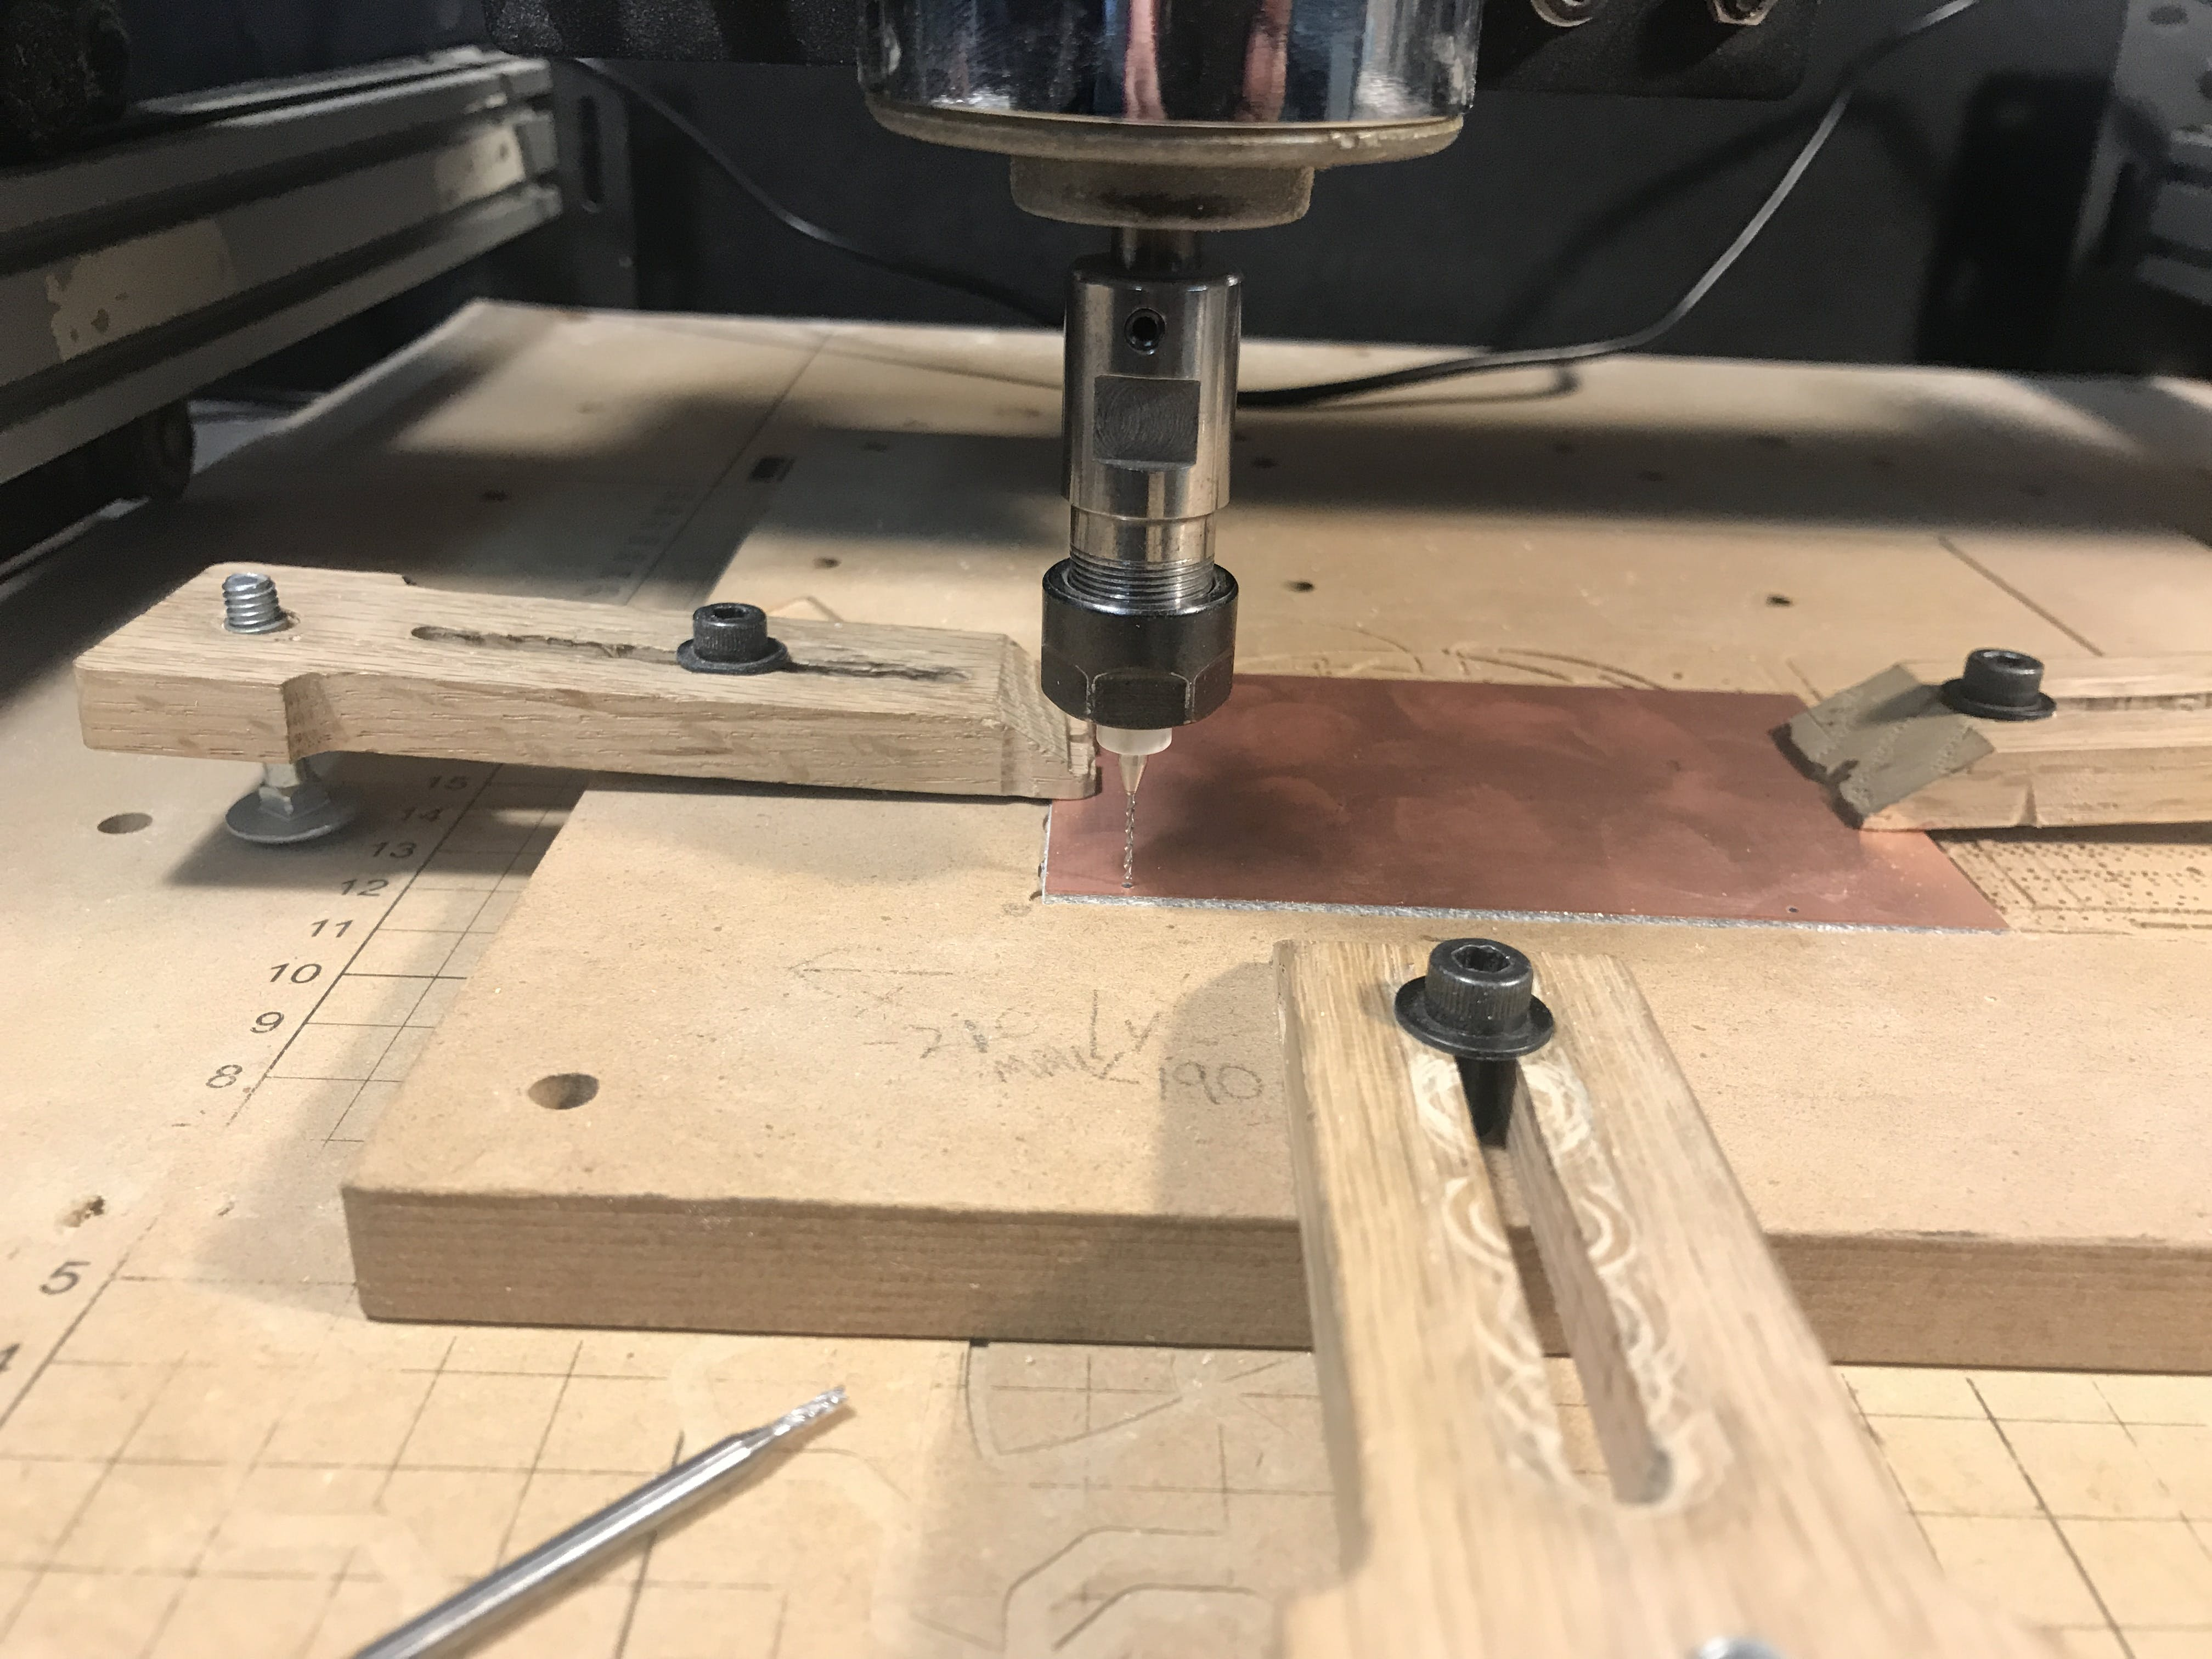 Drilling the alignment hole